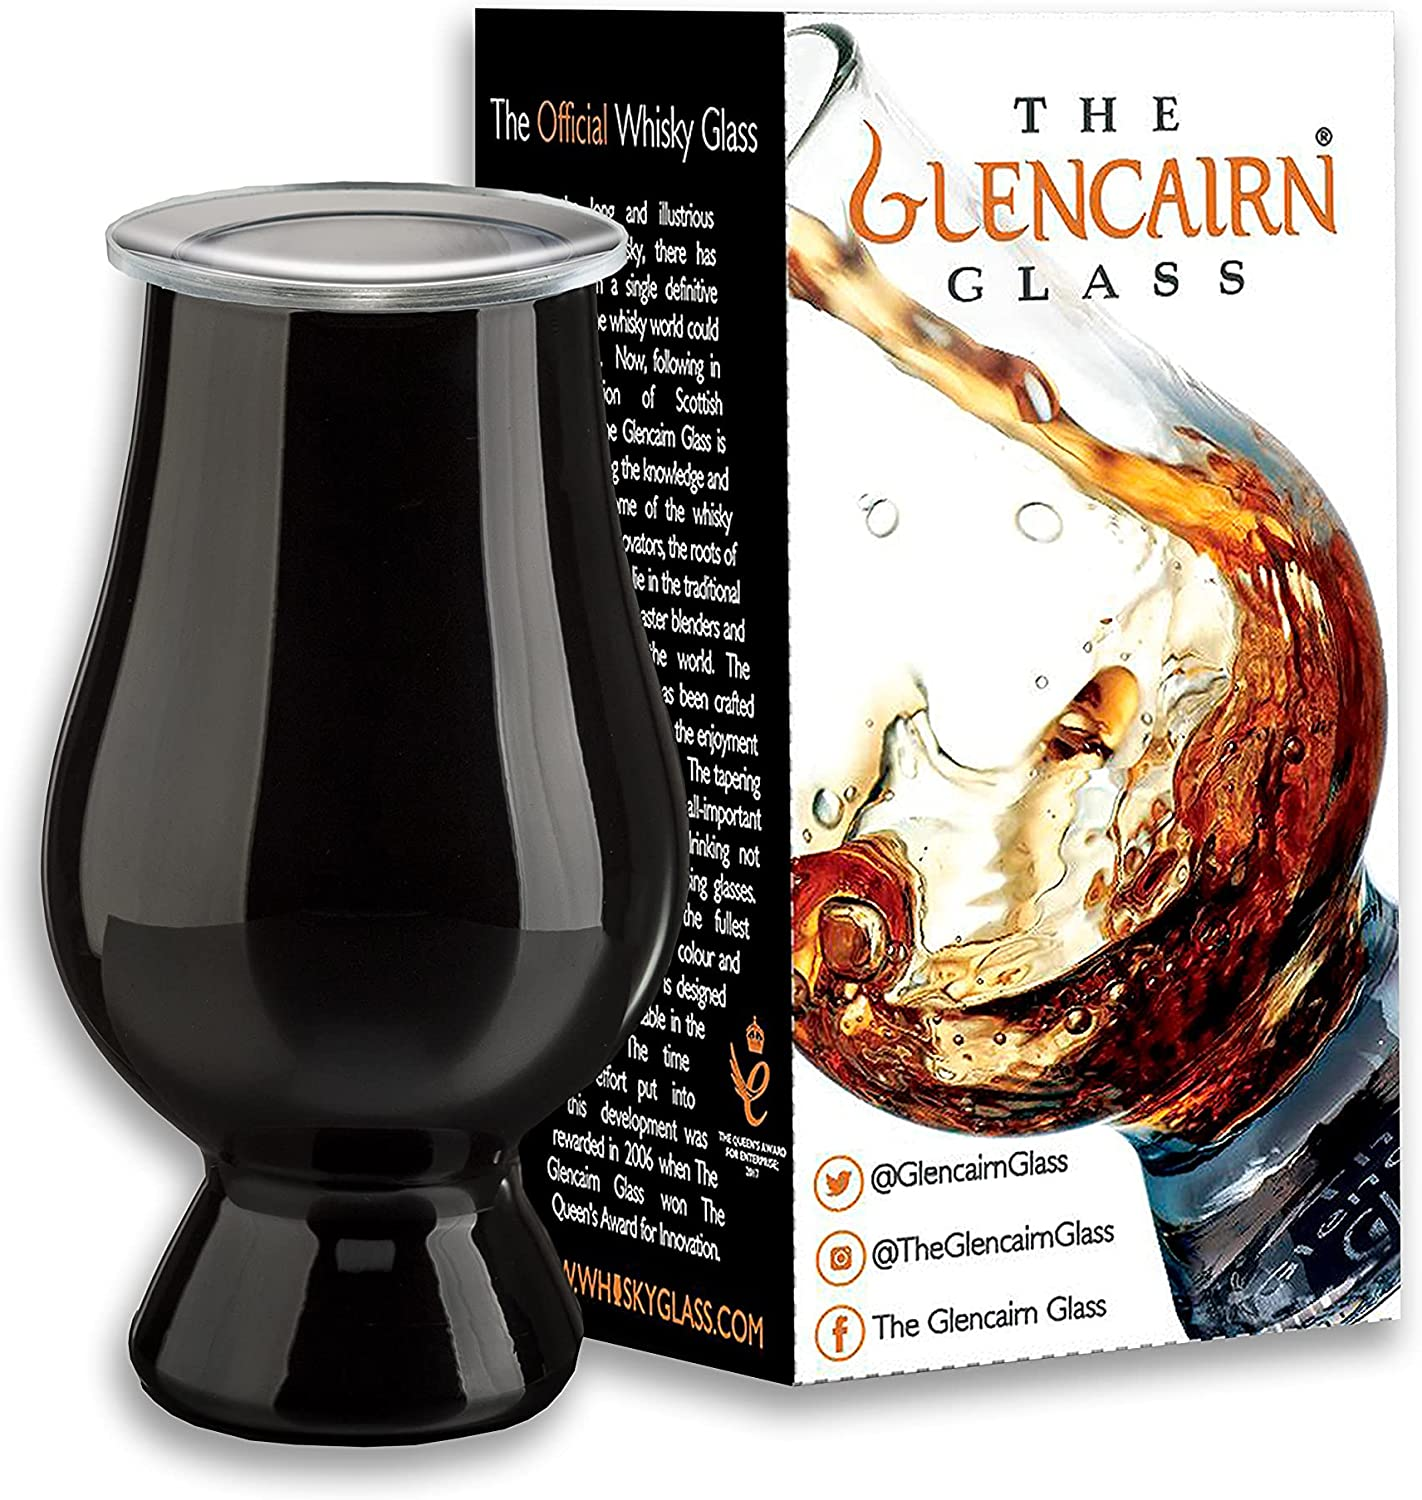 Black Glencairn 5% Max 88% OFF OFF Whisky Glass in Gift … + Cover Watch Carton